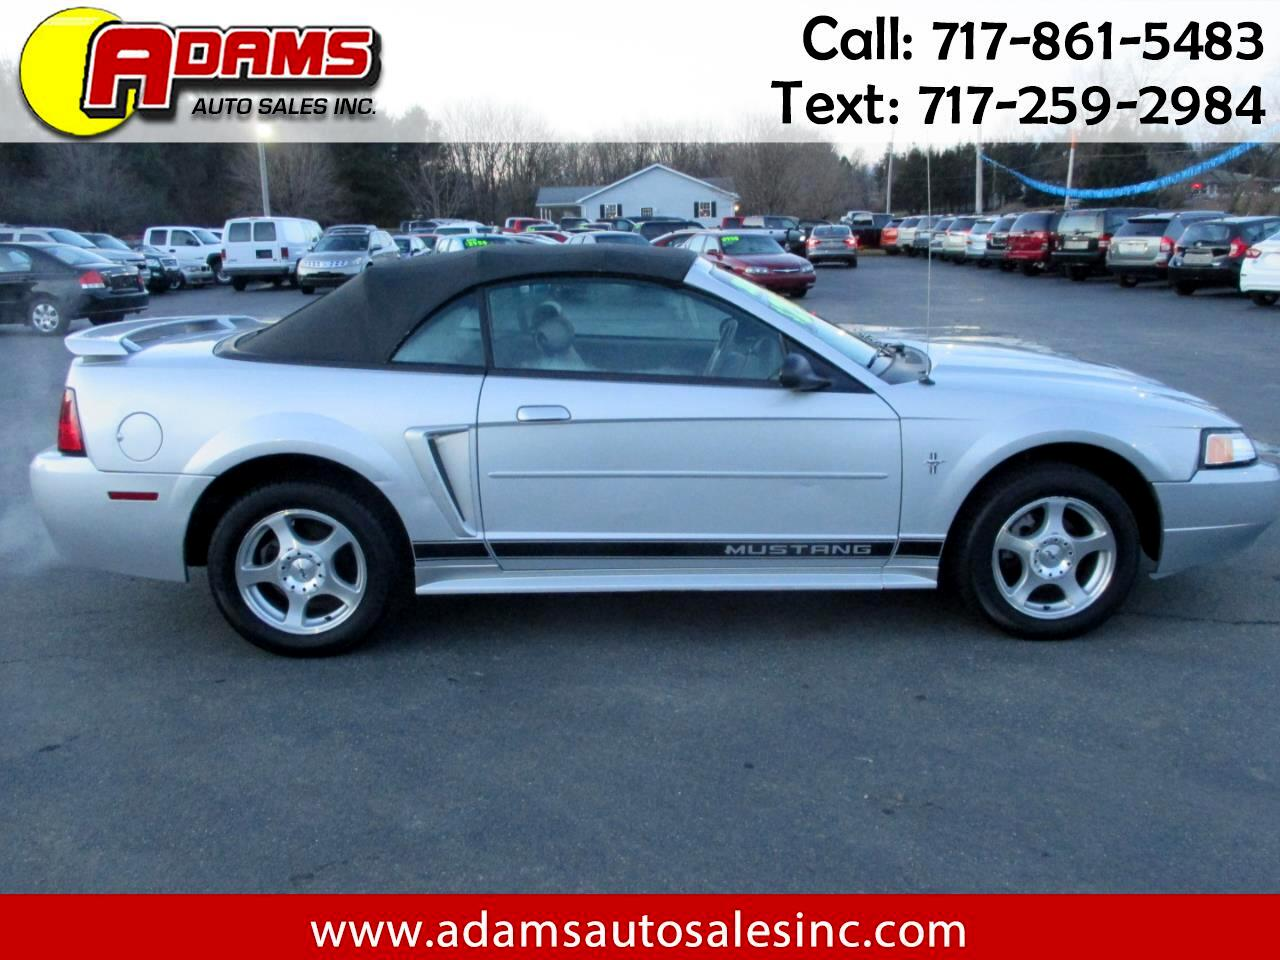 2003 Ford Mustang 2dr Conv Premium